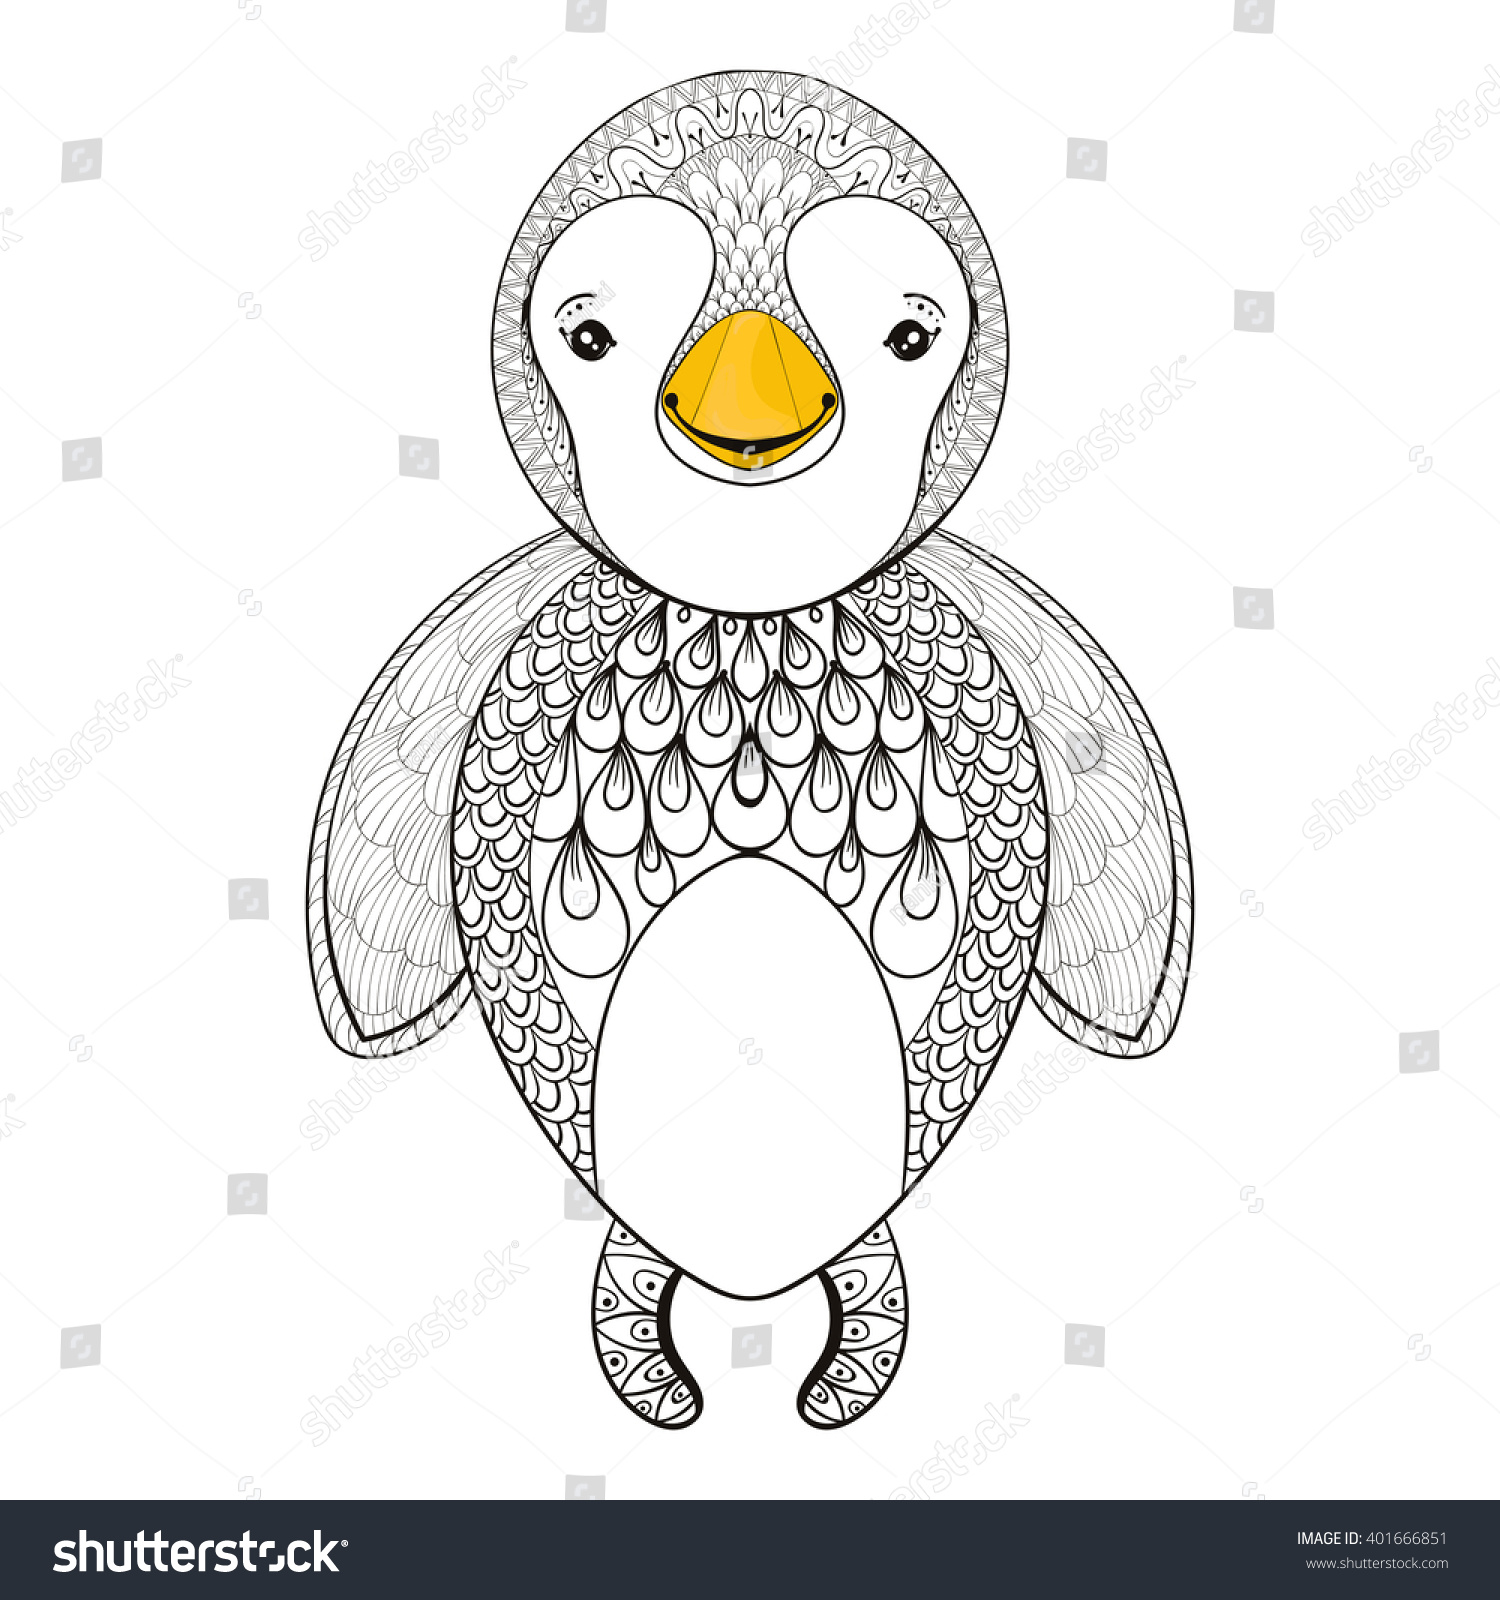 vector penguin coloring page hand stock vector 401666851